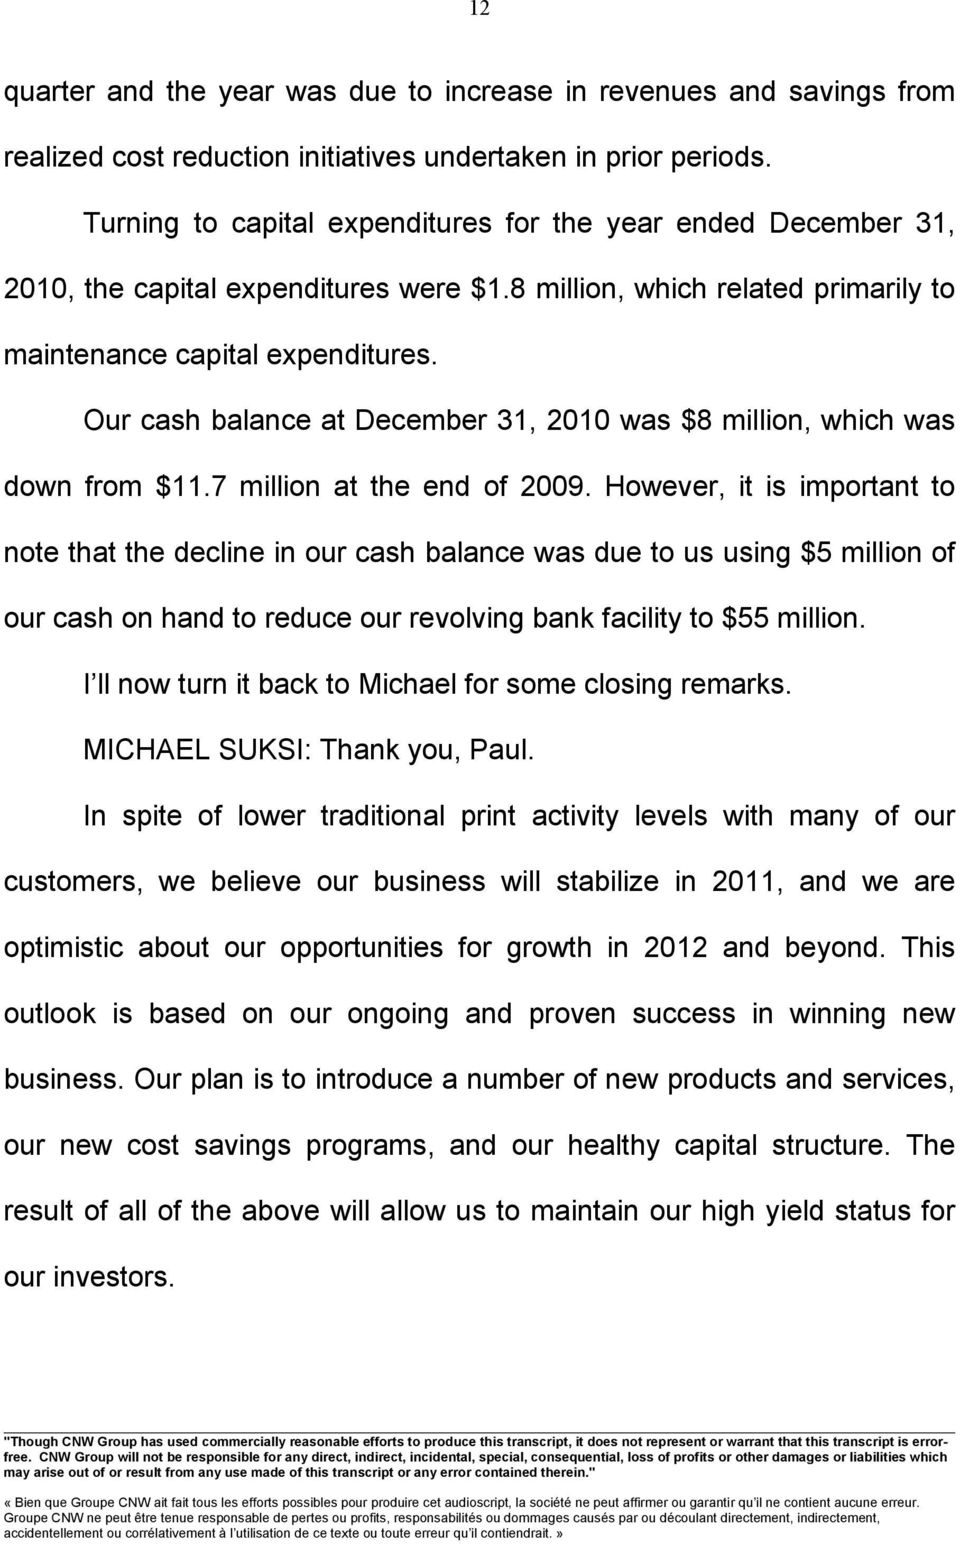 Our cash balance at December 31, 2010 was $8 million, which was down from $11.7 million at the end of 2009.